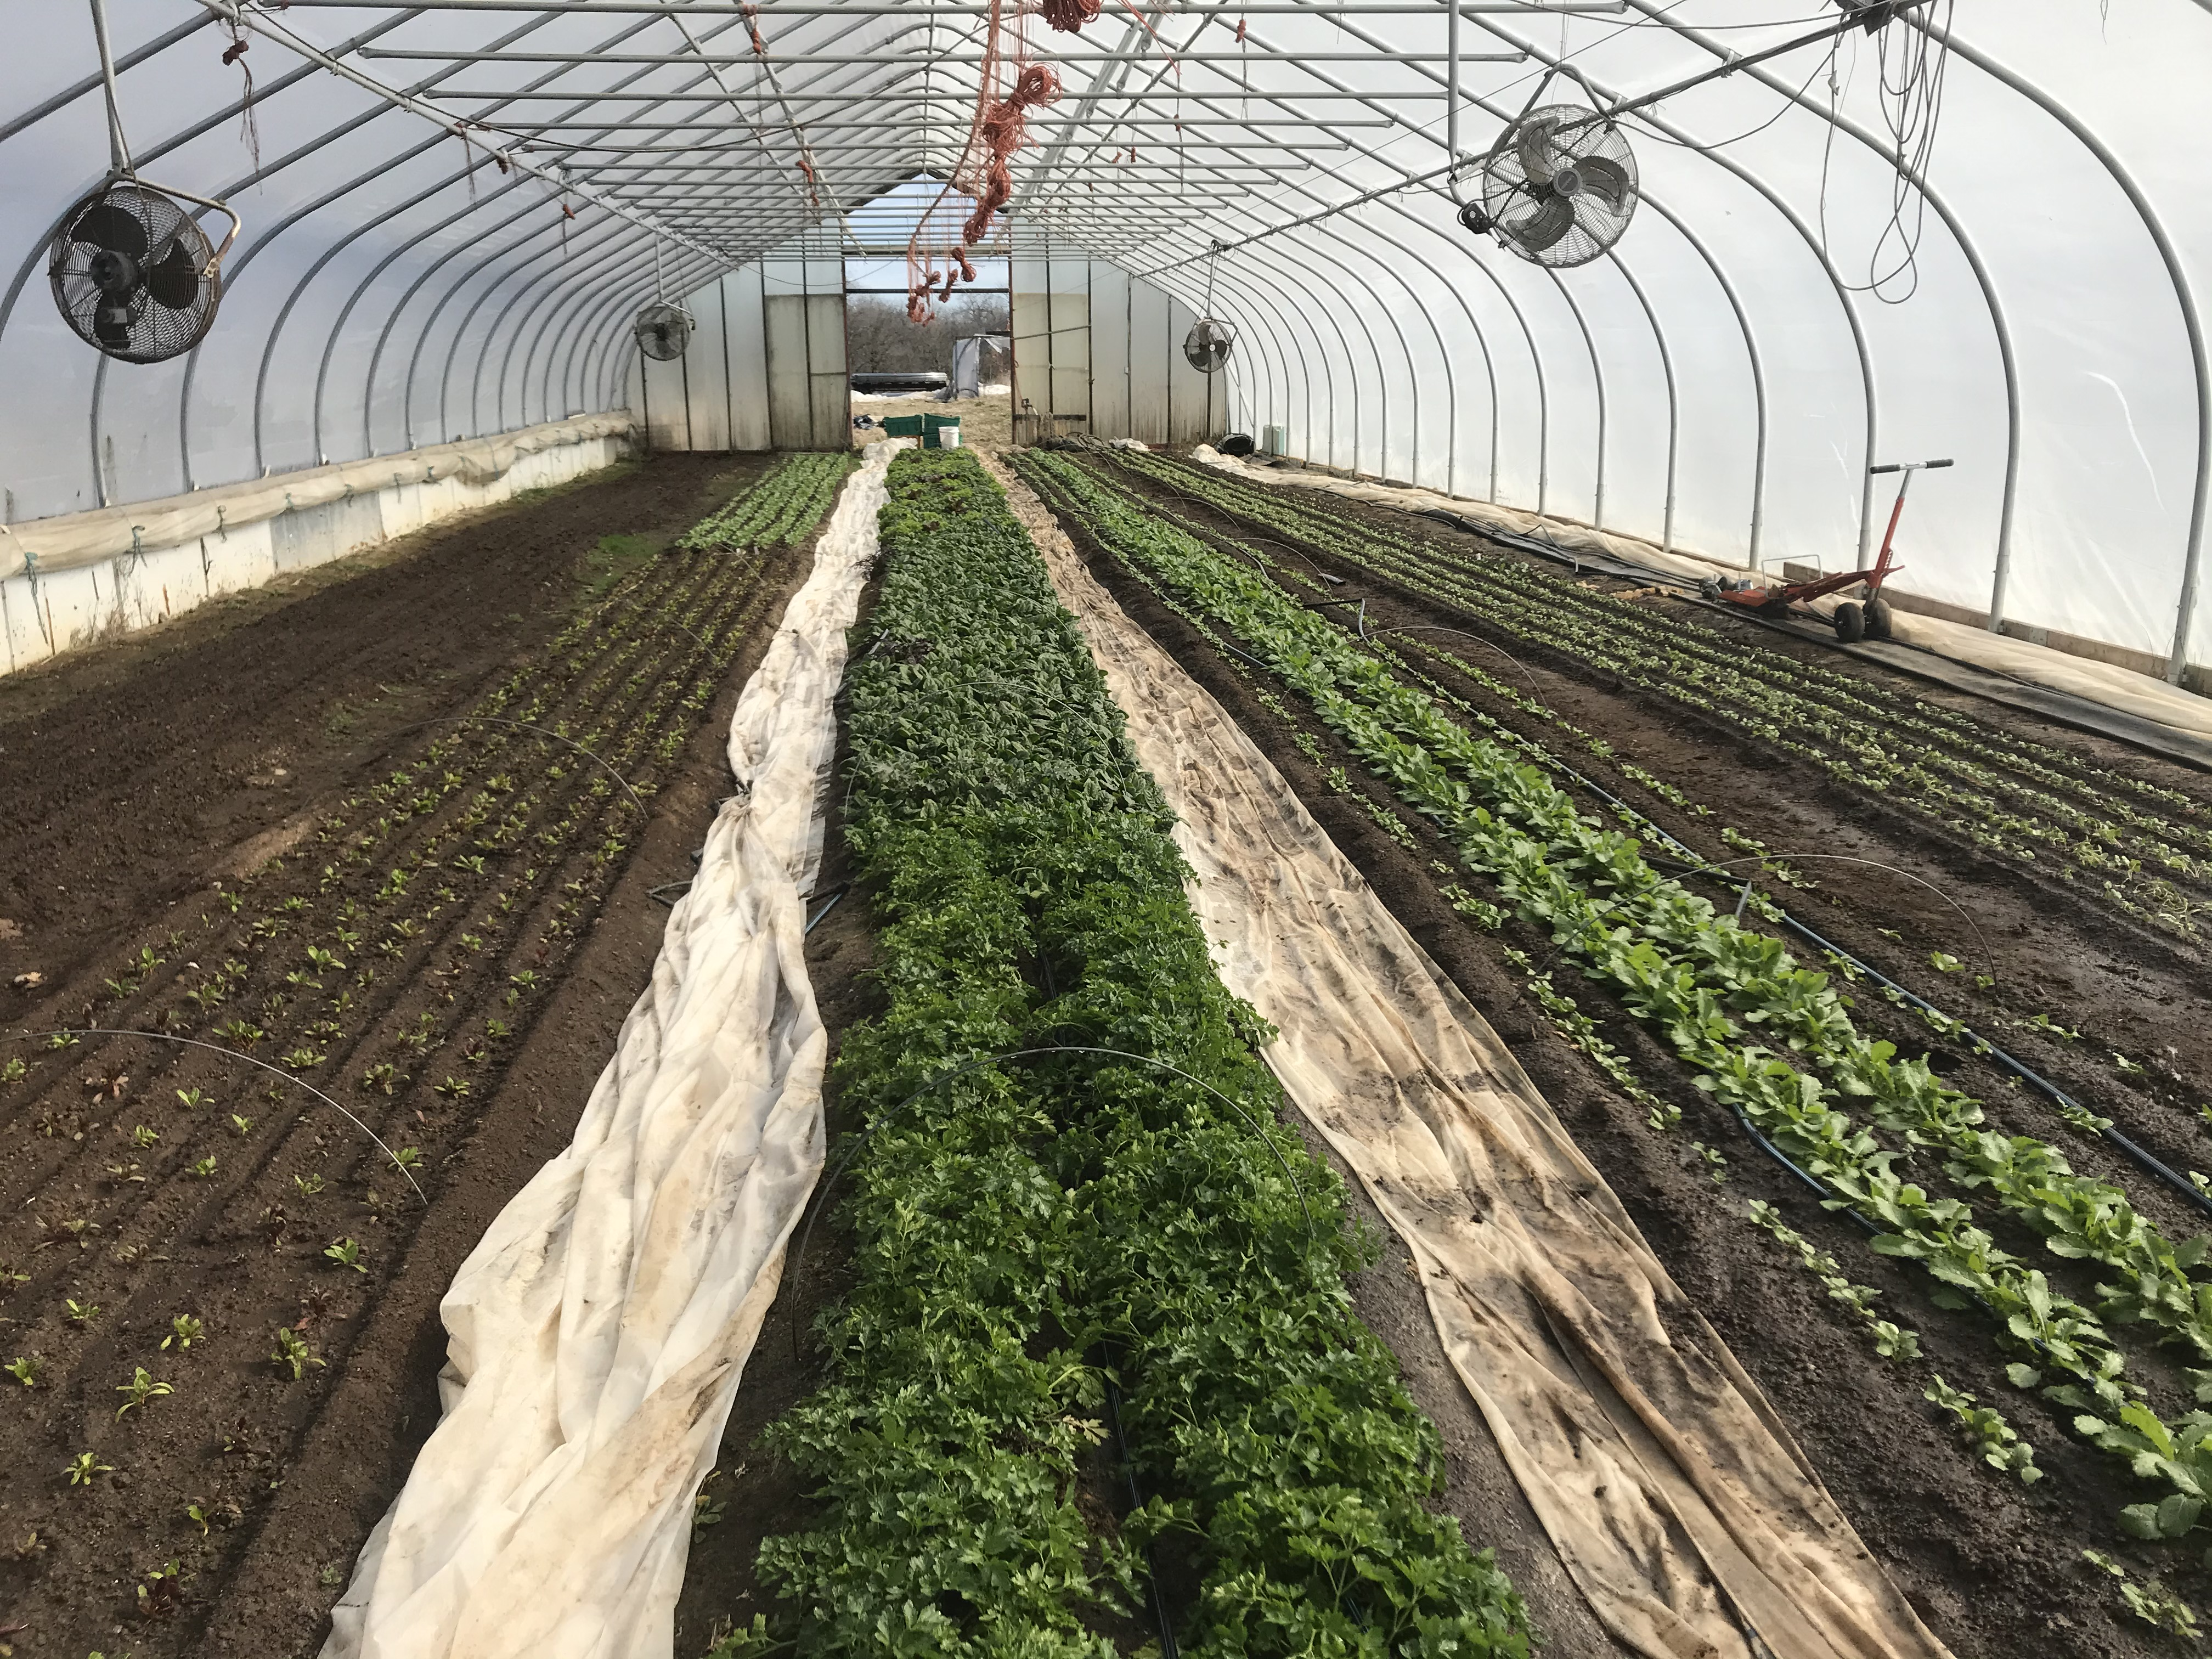 Farm Happenings for March 17, 2020